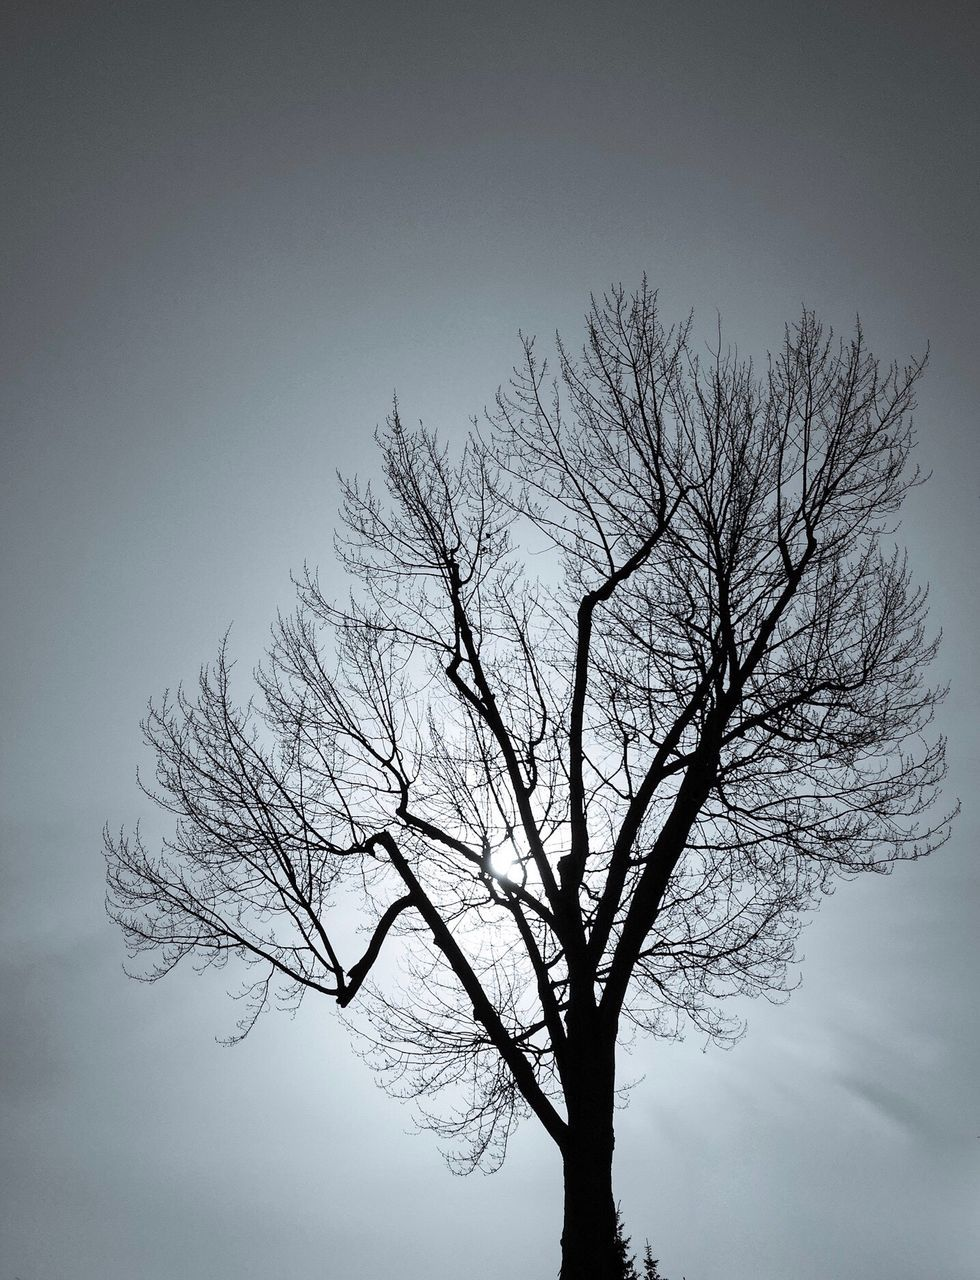 bare tree, branch, tree, lone, tranquility, isolated, beauty in nature, low angle view, nature, clear sky, outdoors, sky, day, no people